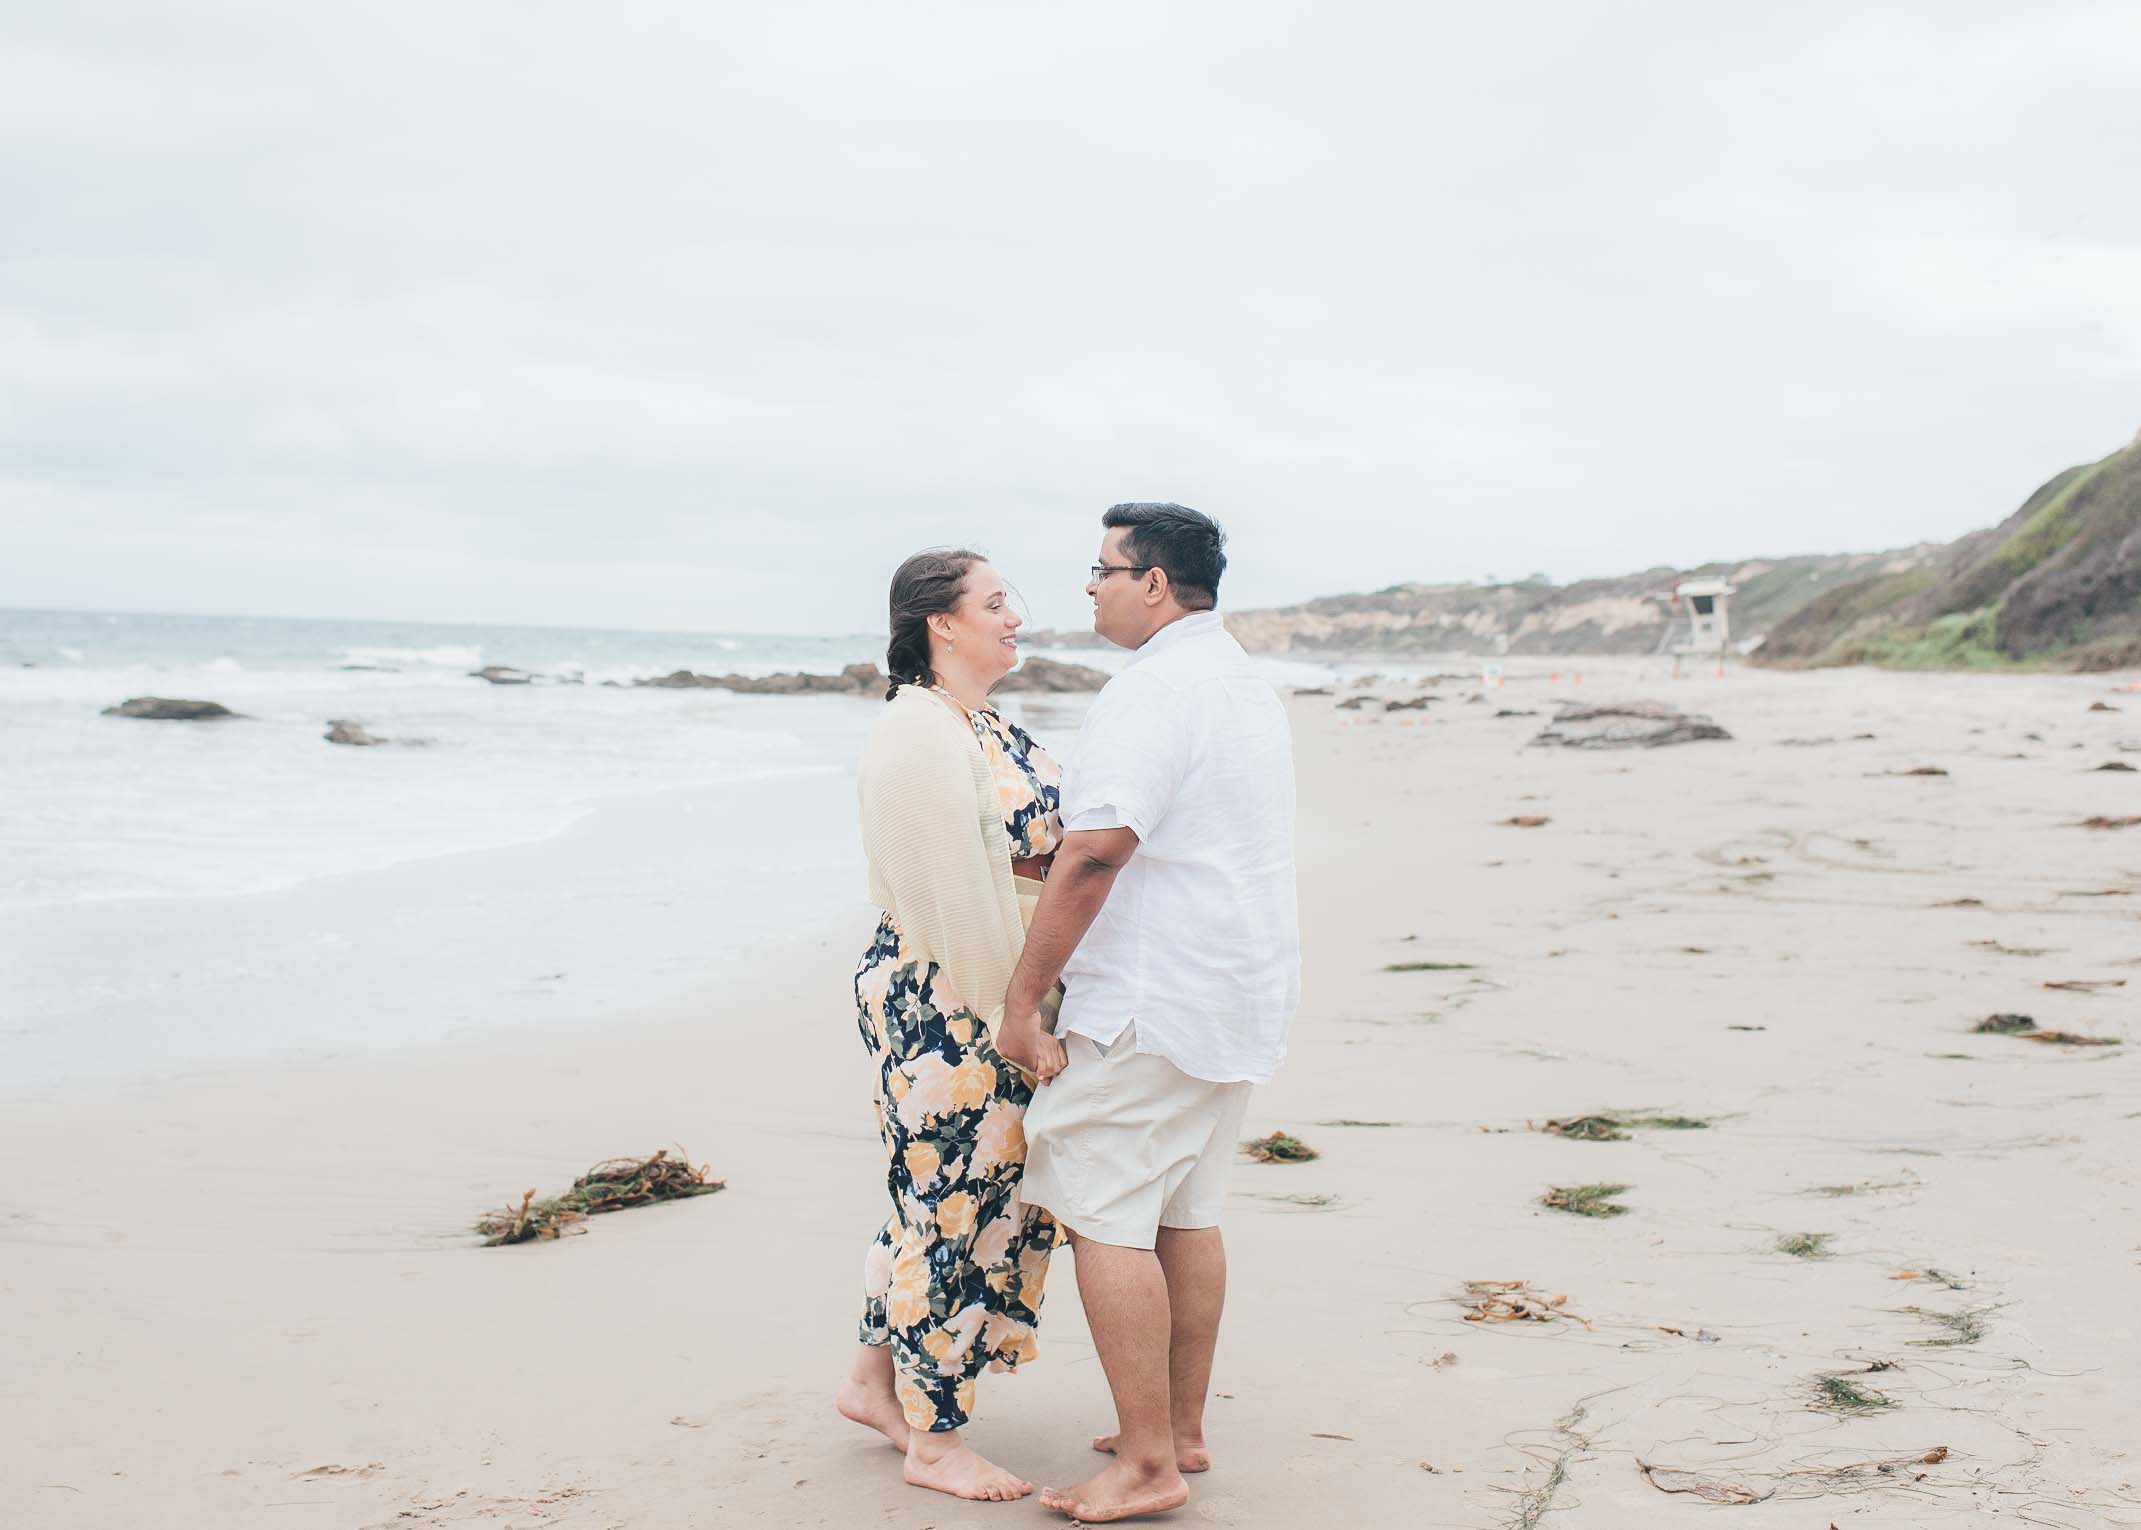 Los Angeles Wedding Photographer, Elopement Photographer, Joshua Tree Wedding Photographer, Malibu Wedding Photographer, Newport Beach Wedding Photographer, Southern California Wedding Photographer